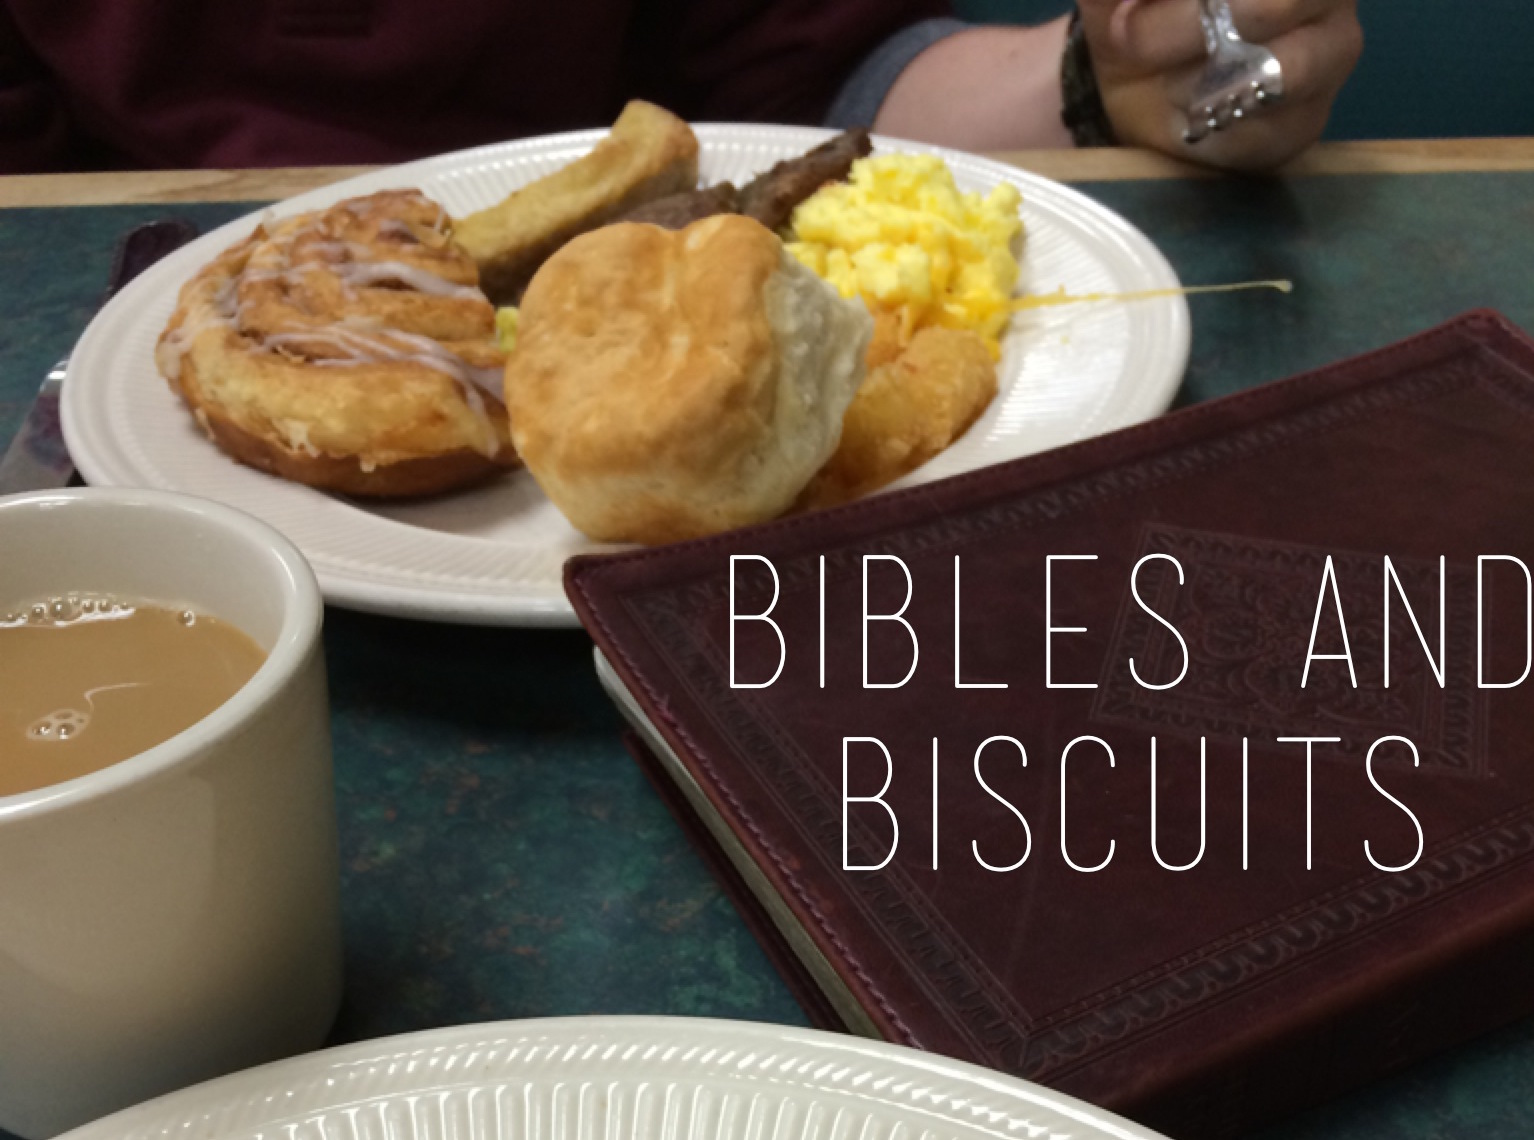 Biscuits and Bibles